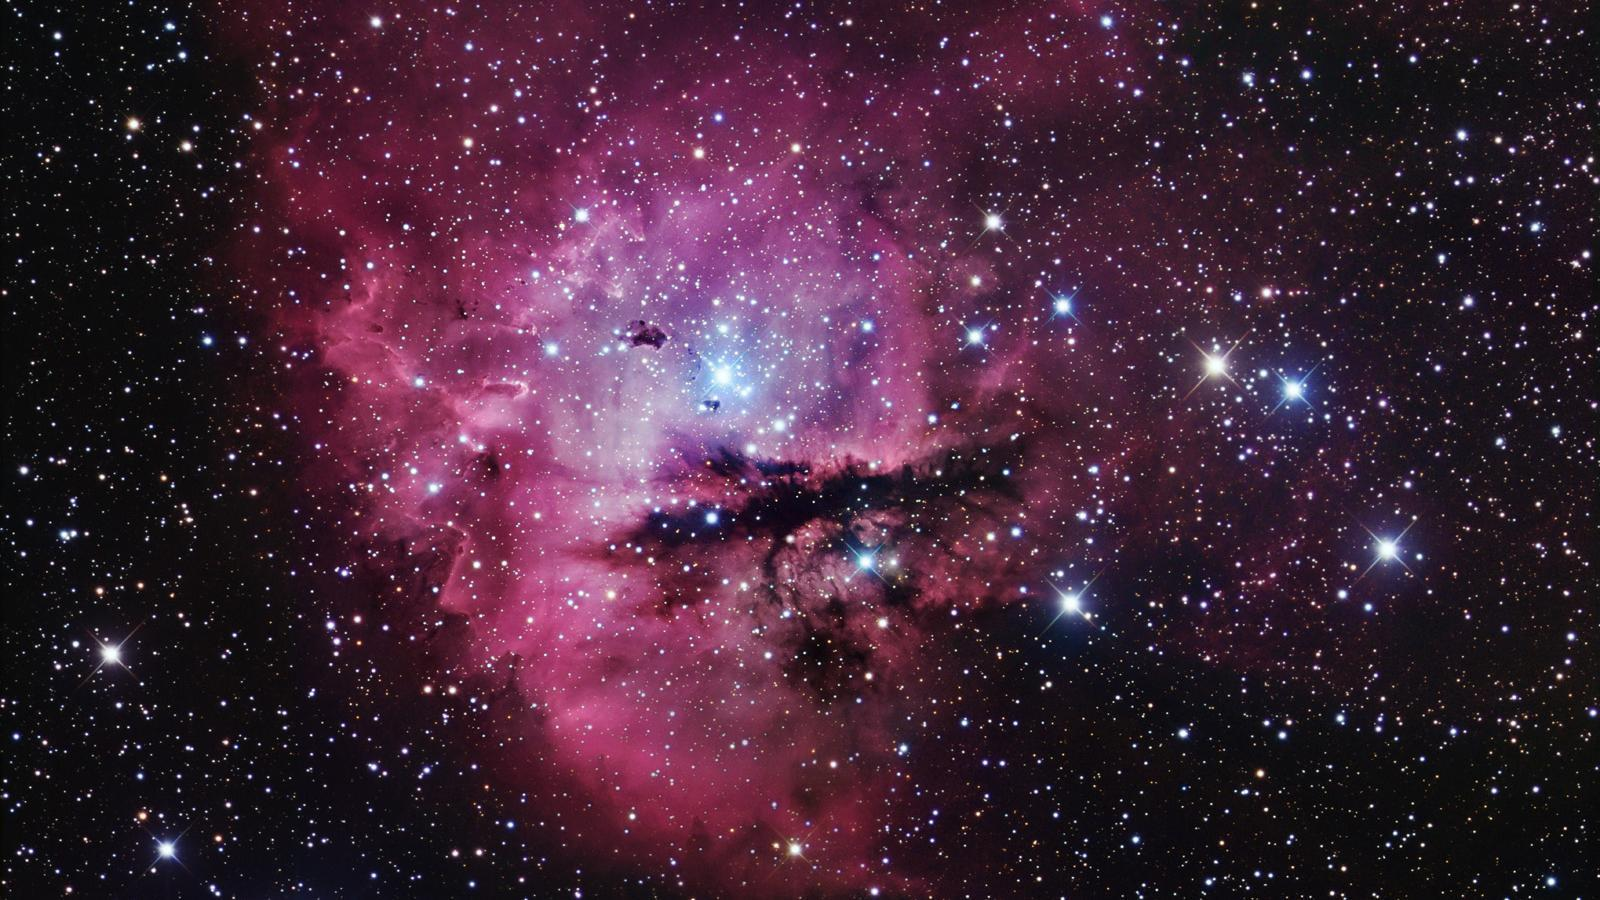 Nebula Backgrounds - Wallpaper Cave Blue Nebula Wallpaper Widescreen